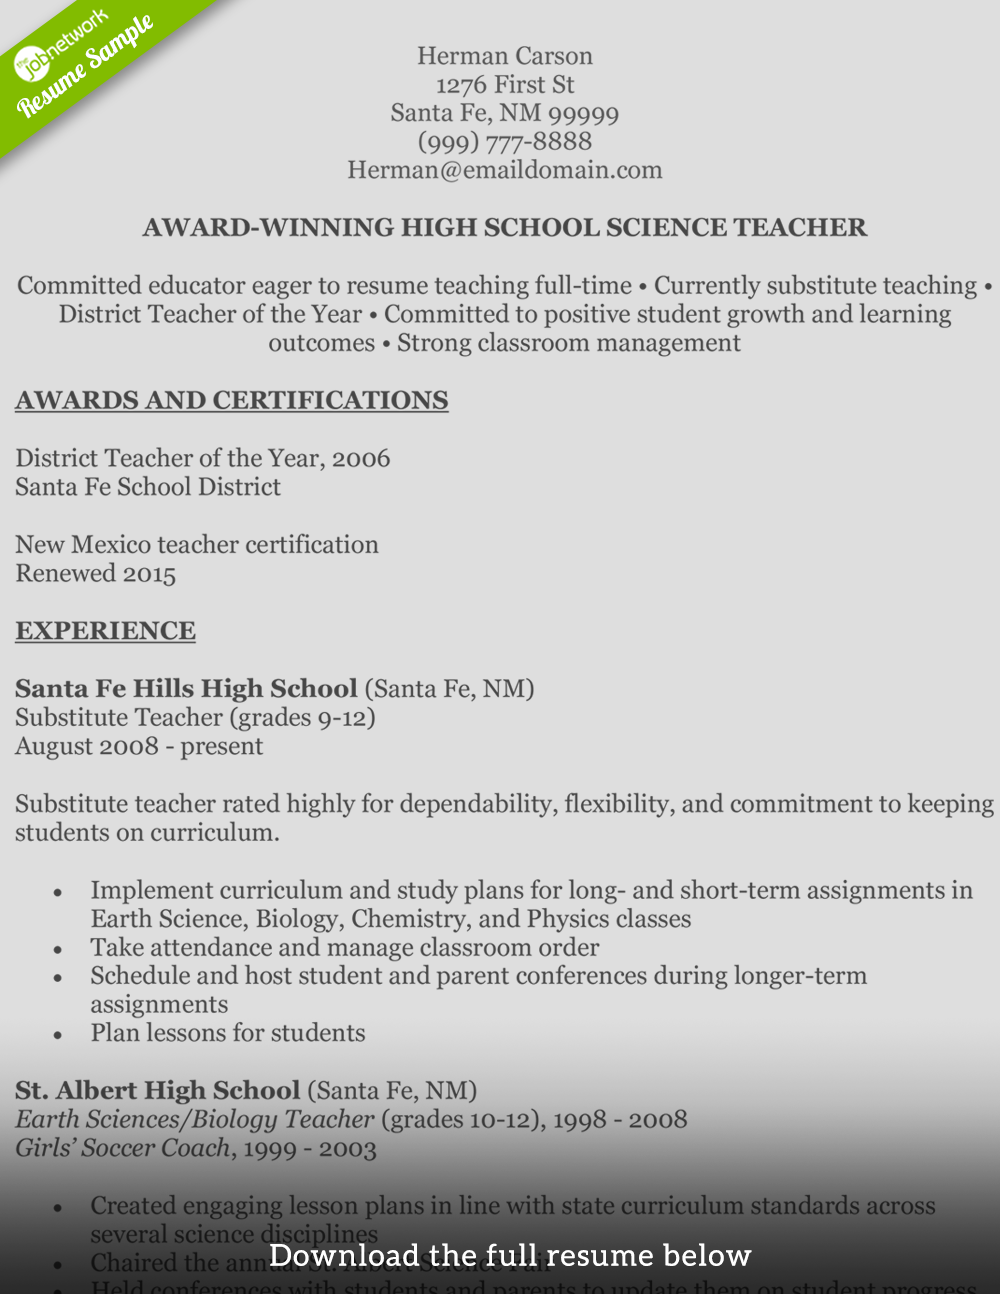 Teaching Resume Herman Carson  Resume Lesson Plan